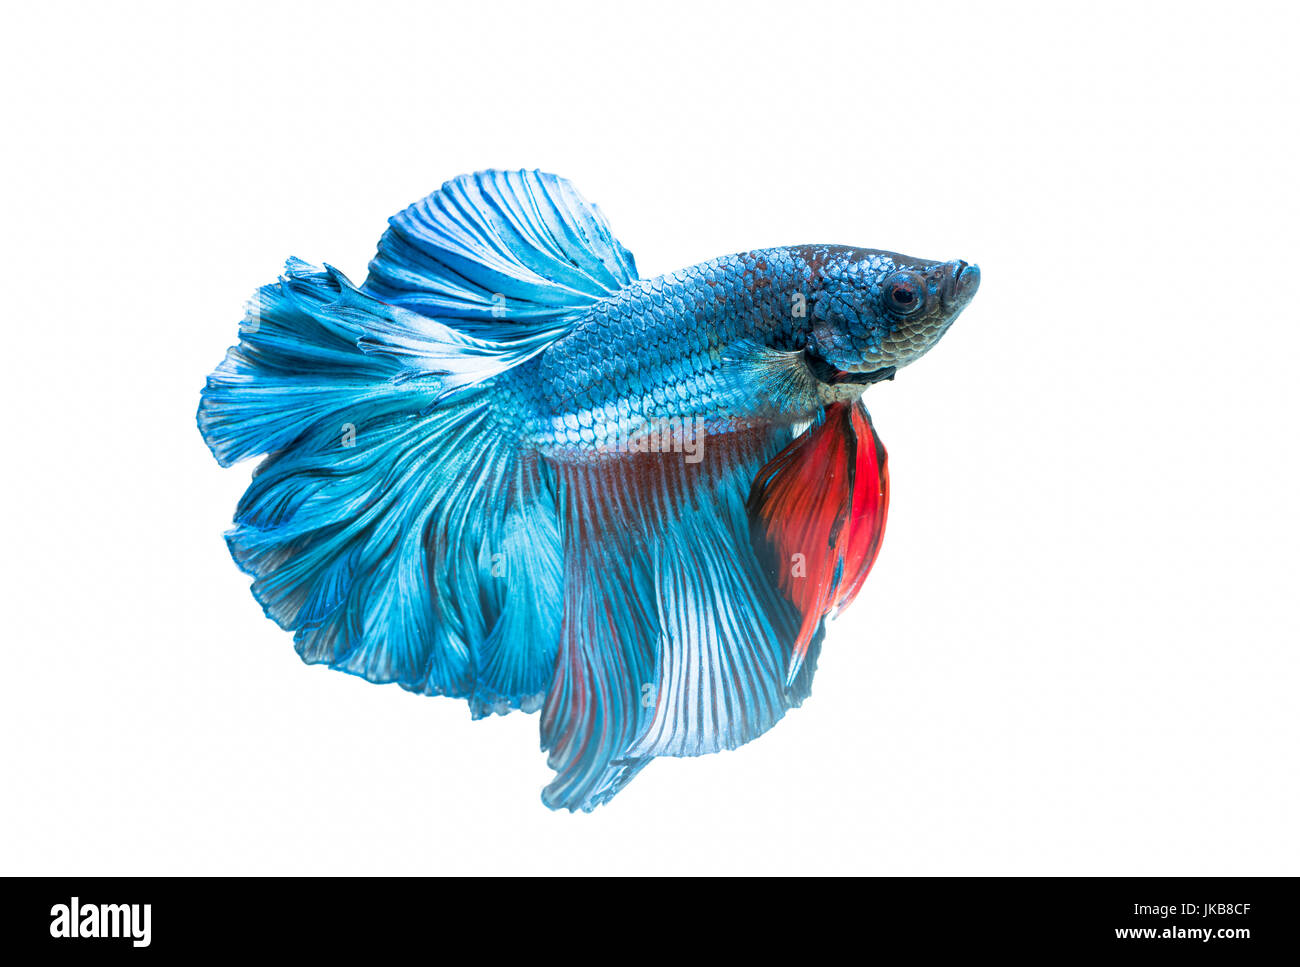 siamese fighting fish, betta splendens isolated on white background, it is popular as an aquarium fish Stock Photo